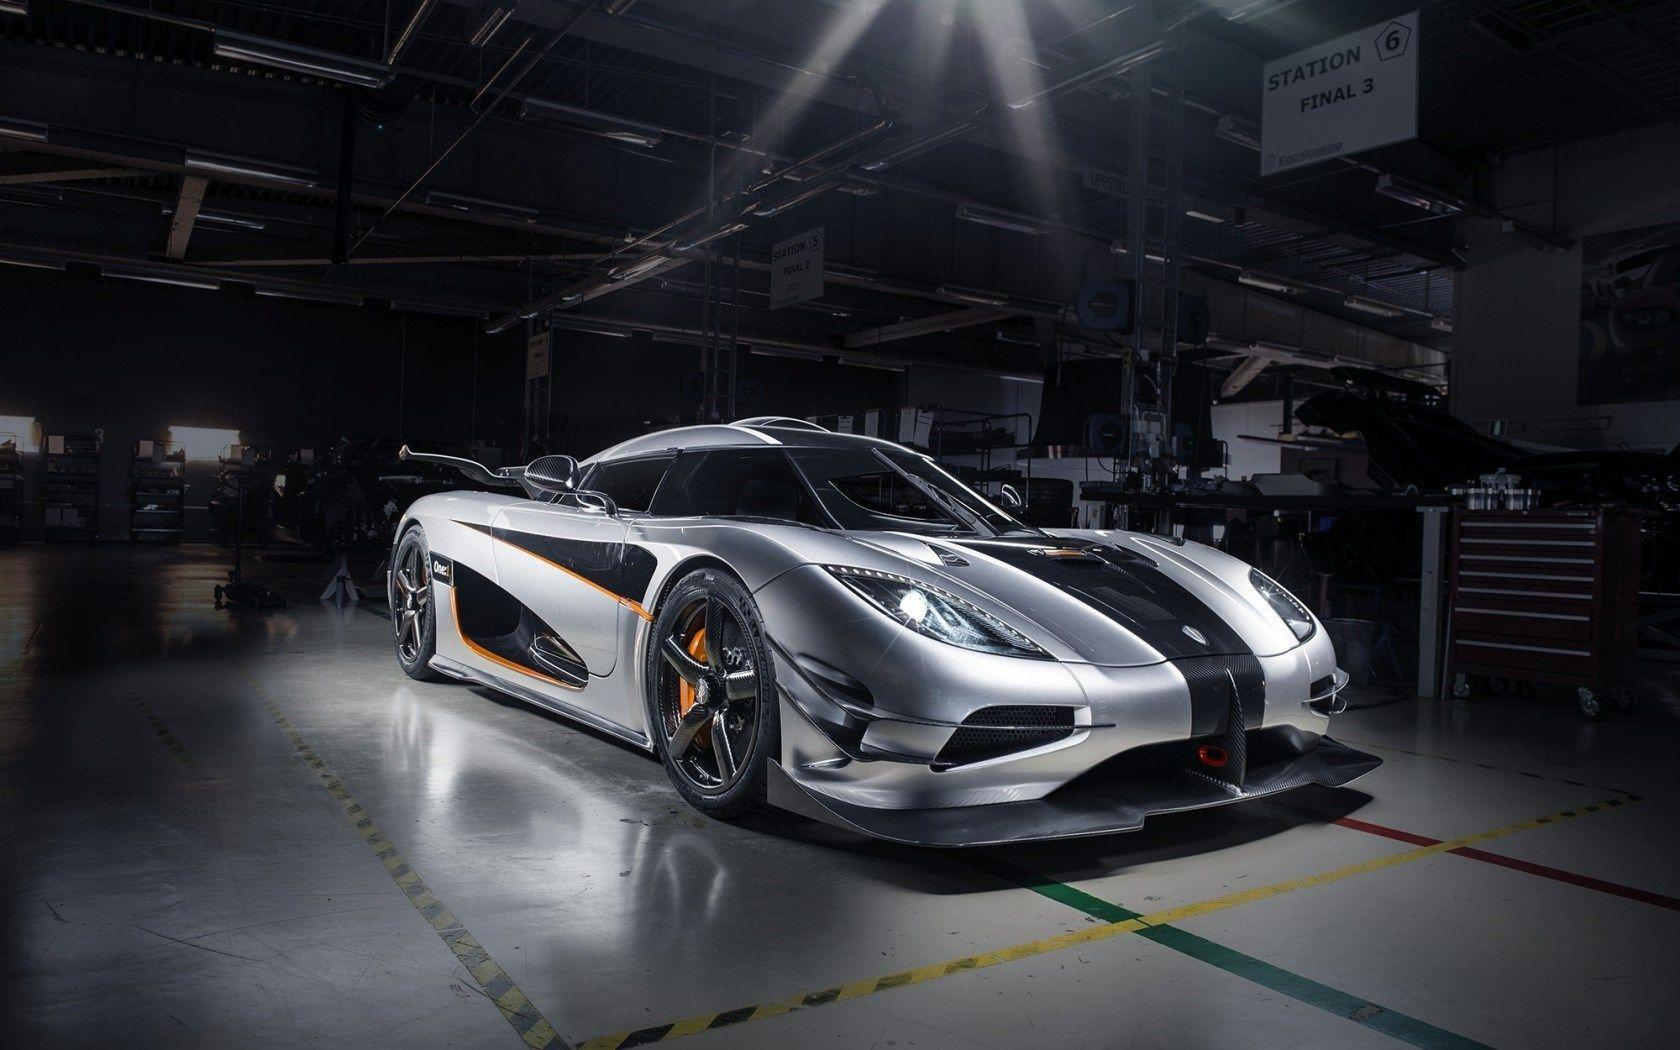 Koenigsegg One:1 Wallpaper, Awesome 40 Koenigsegg One Wallpapers